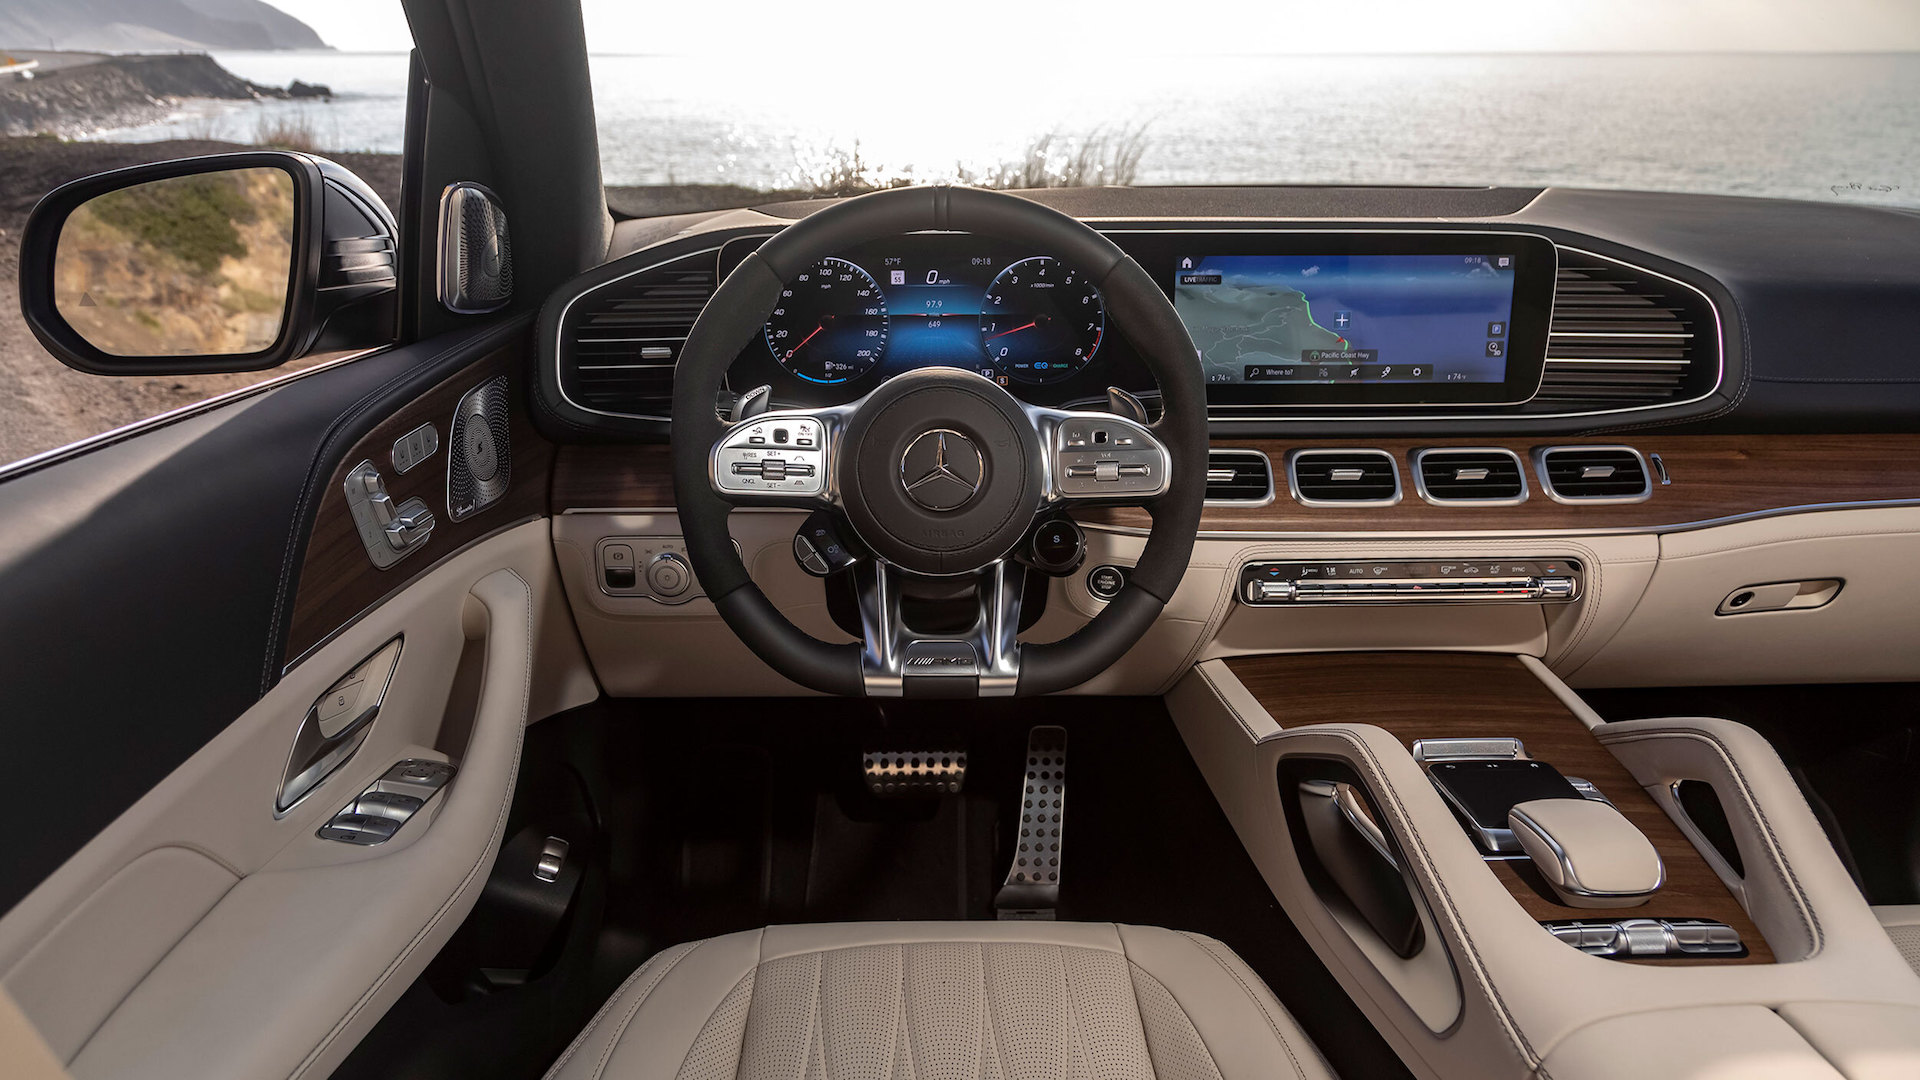 2021 Mercedes AMG GLS Luxury SUV interior